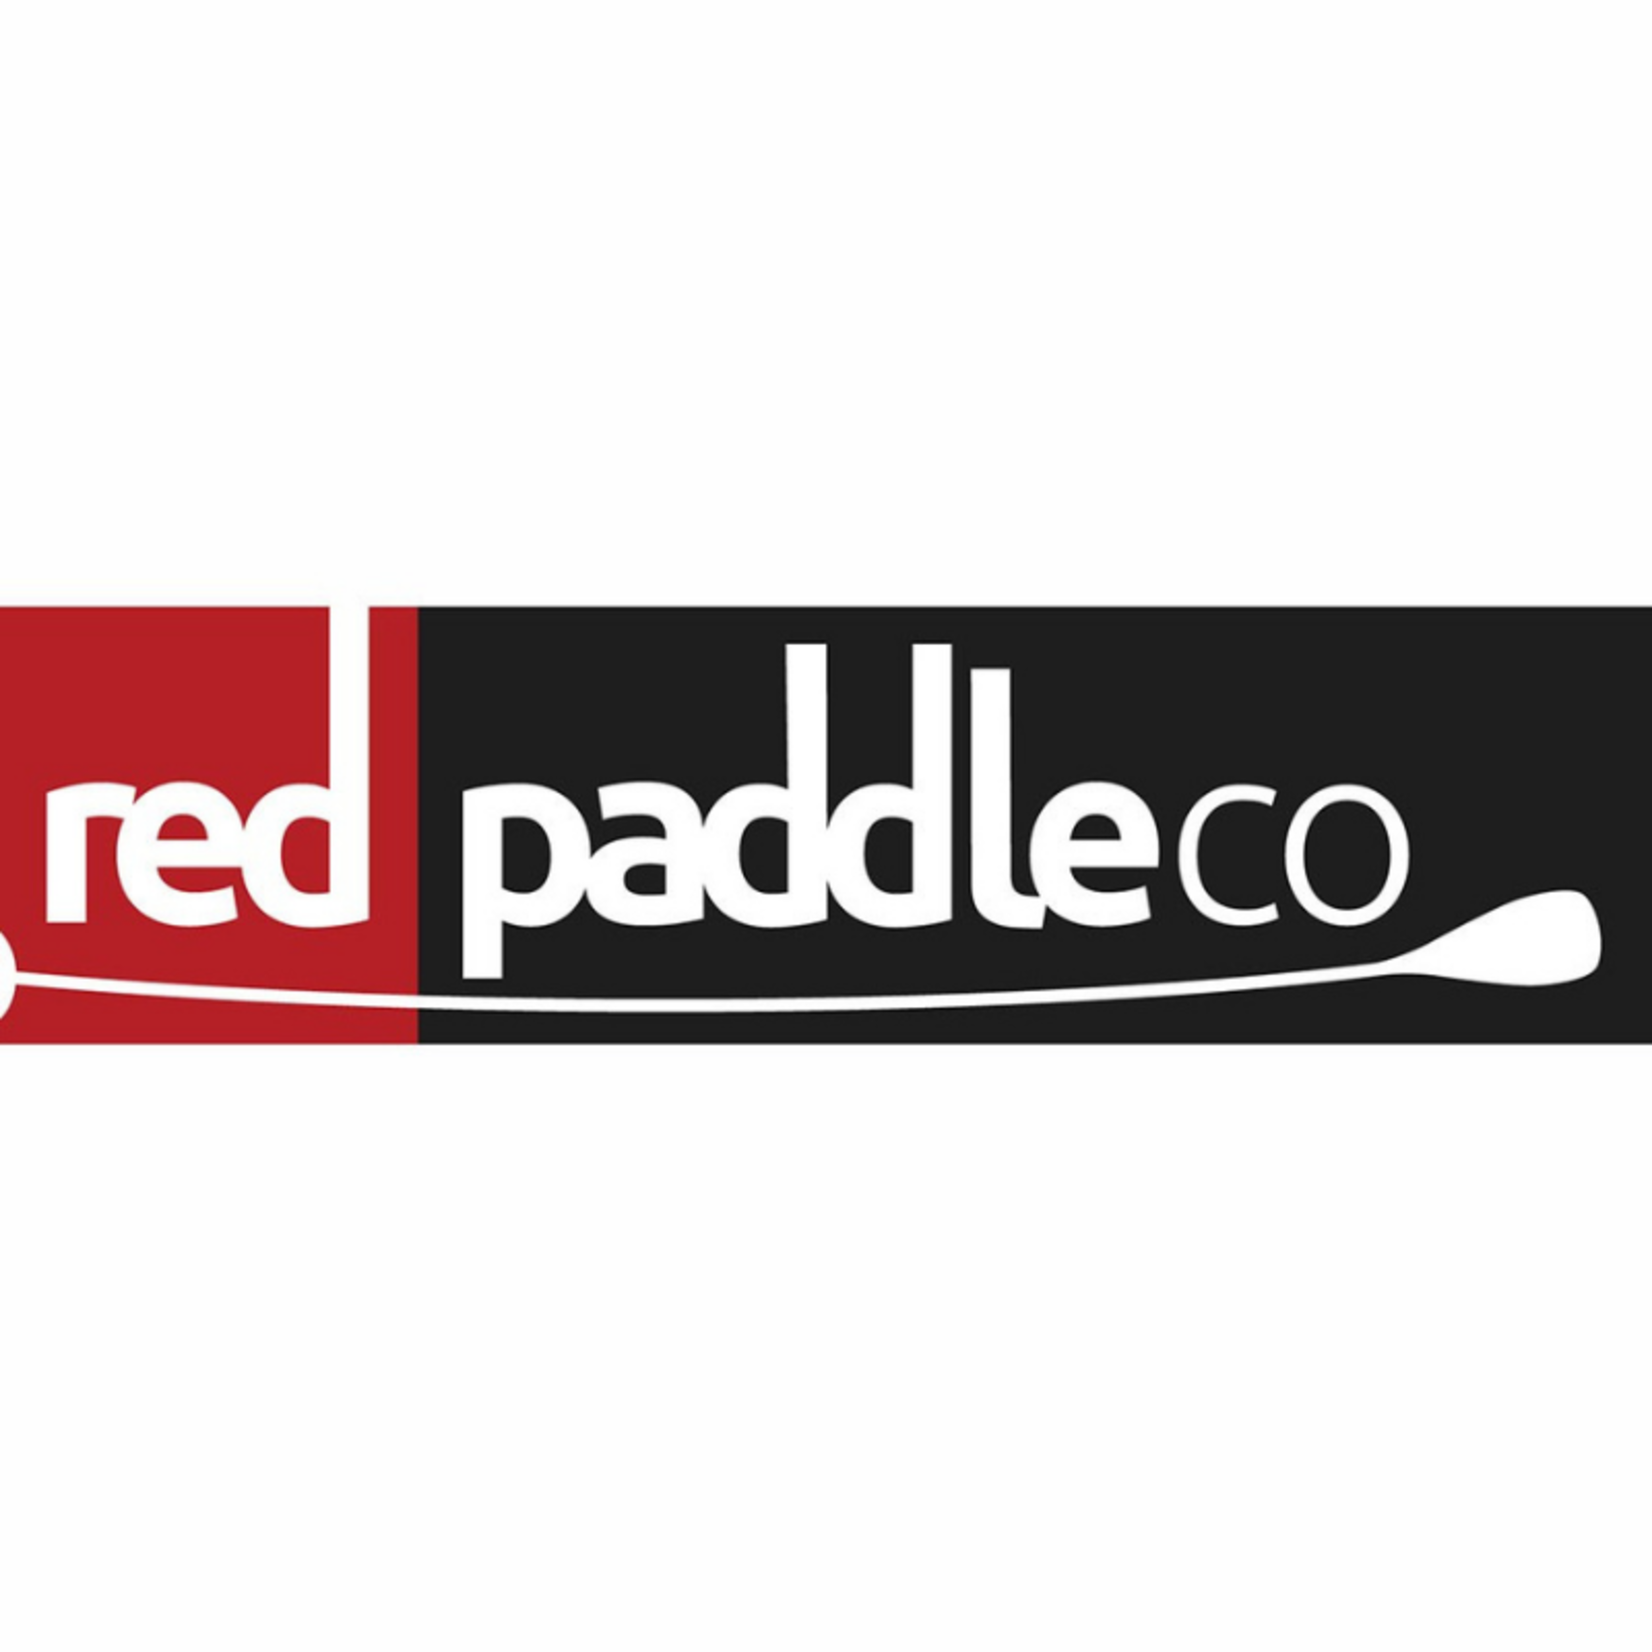 Red Paddle Co. Red Paddle Co Stickers